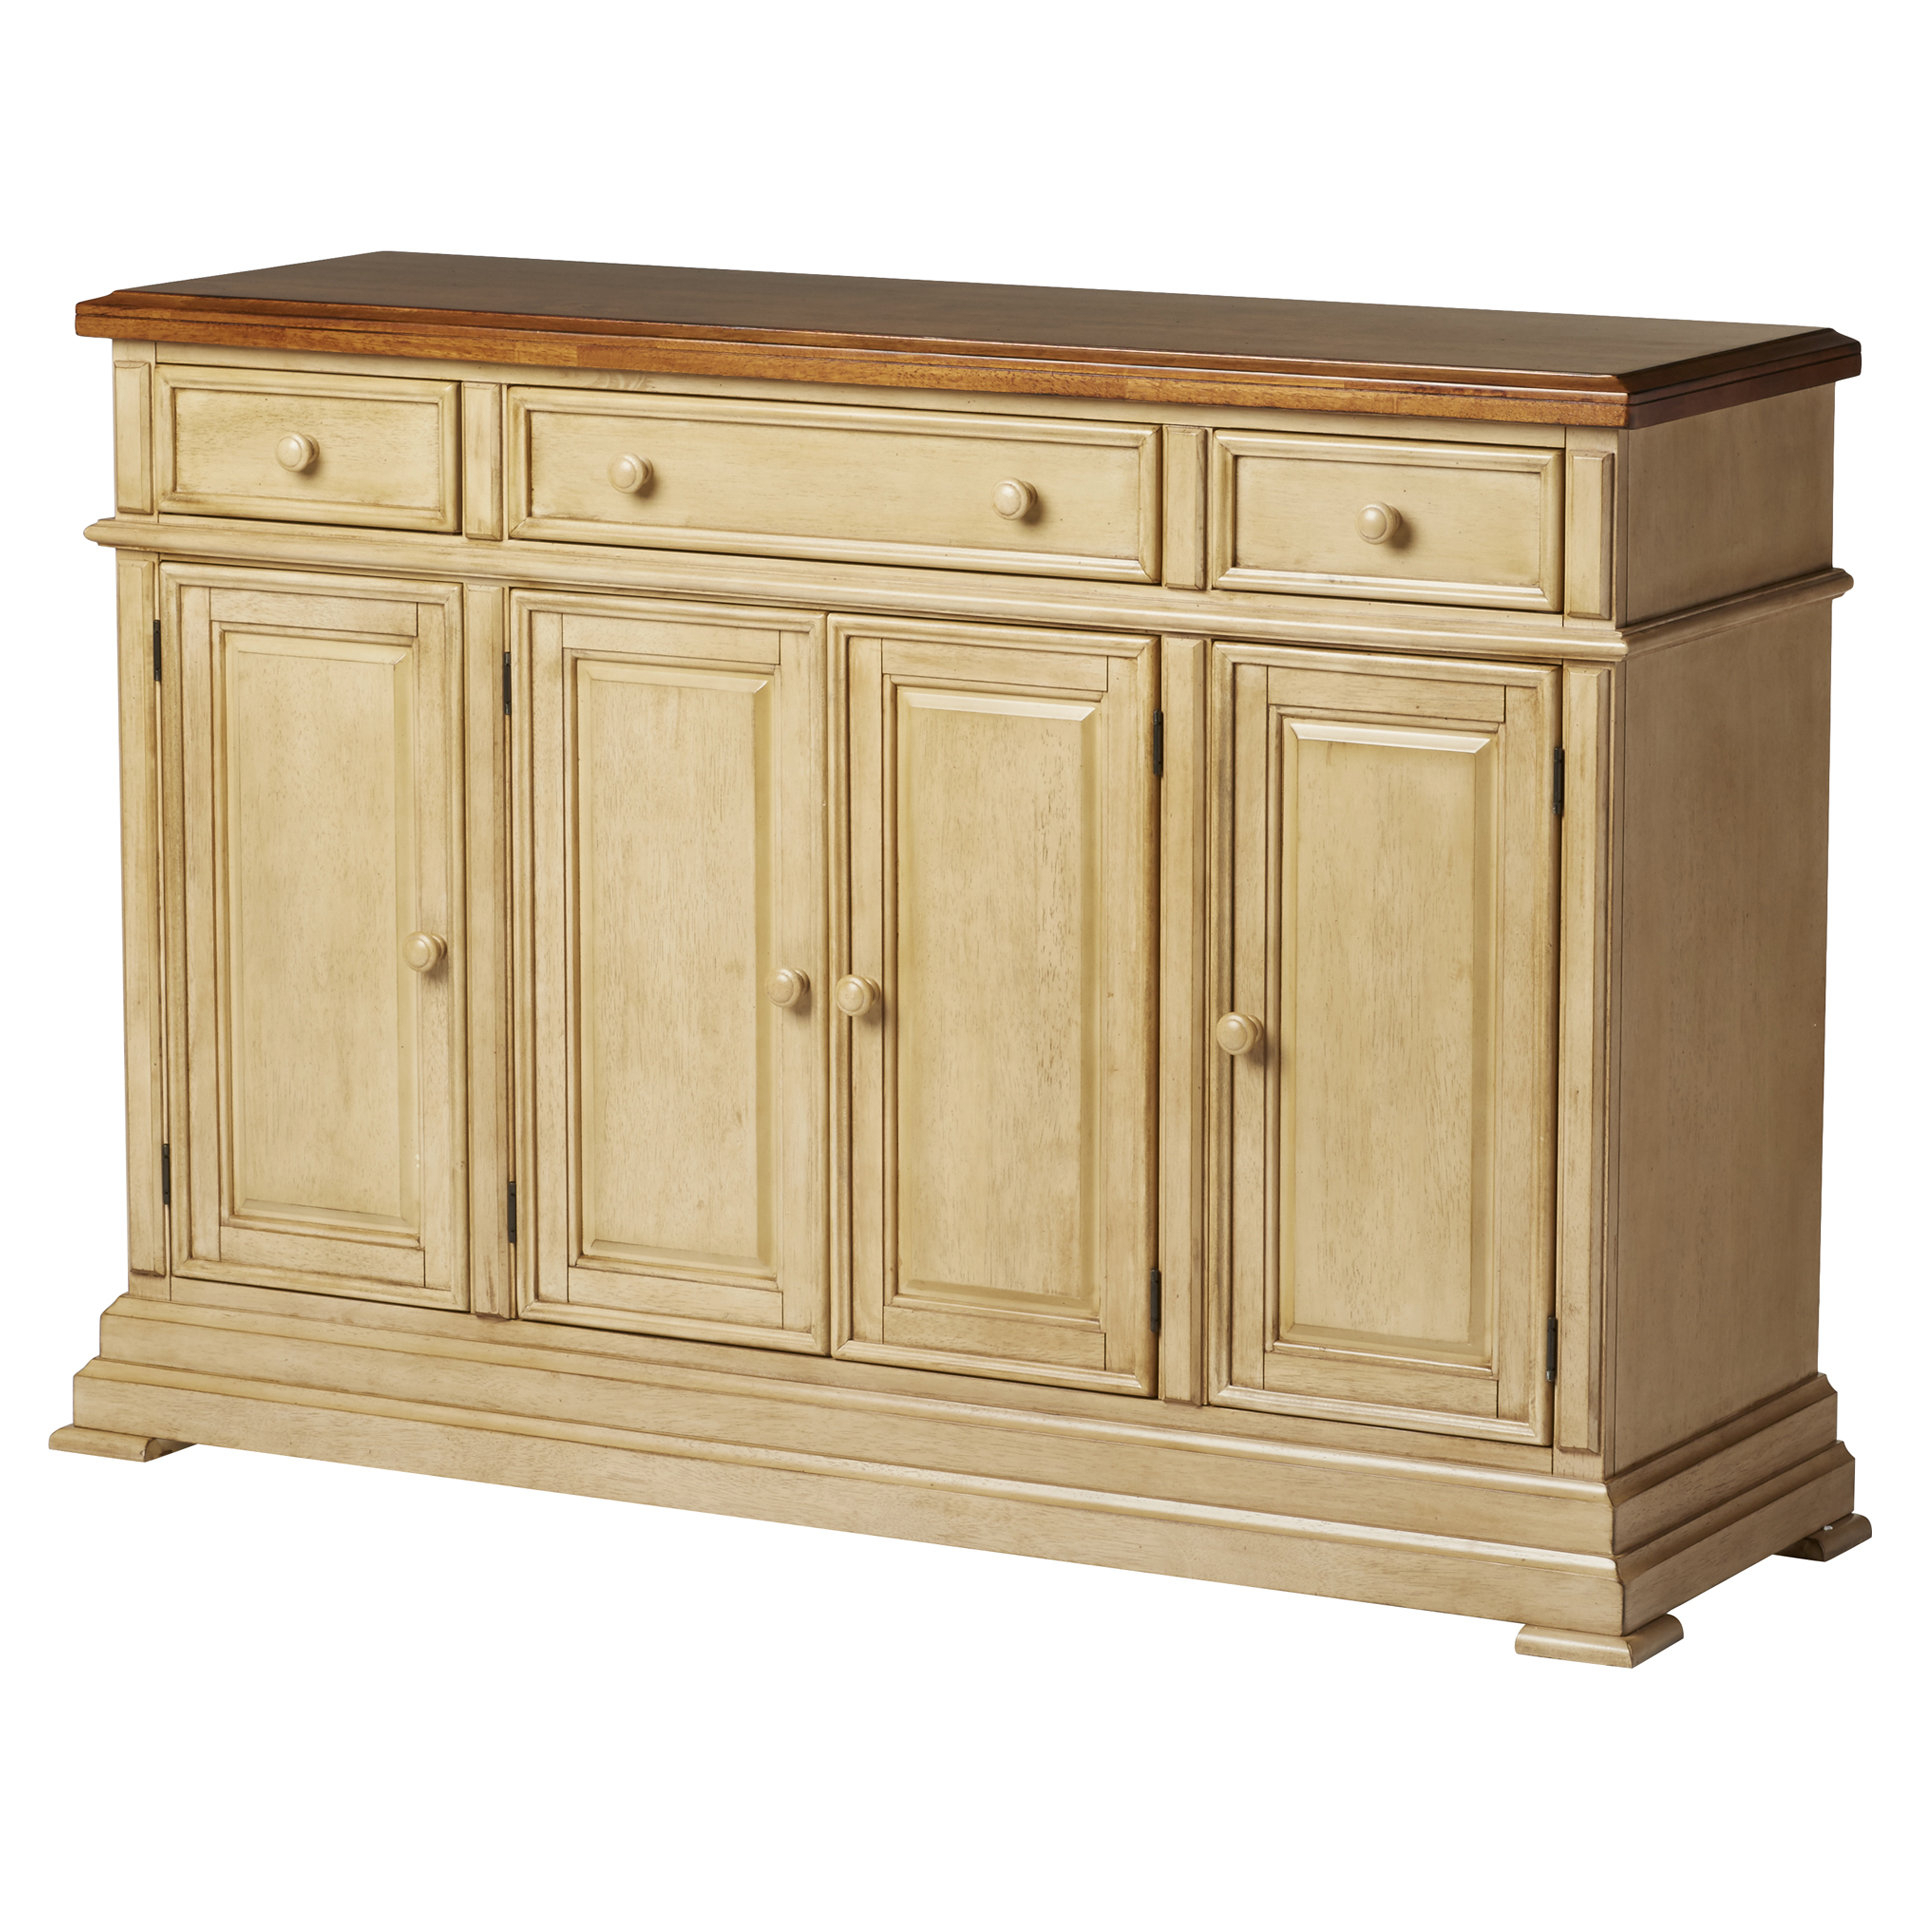 Courtdale Sideboard With Regard To Most Recently Released Courtdale Sideboards (#10 of 20)